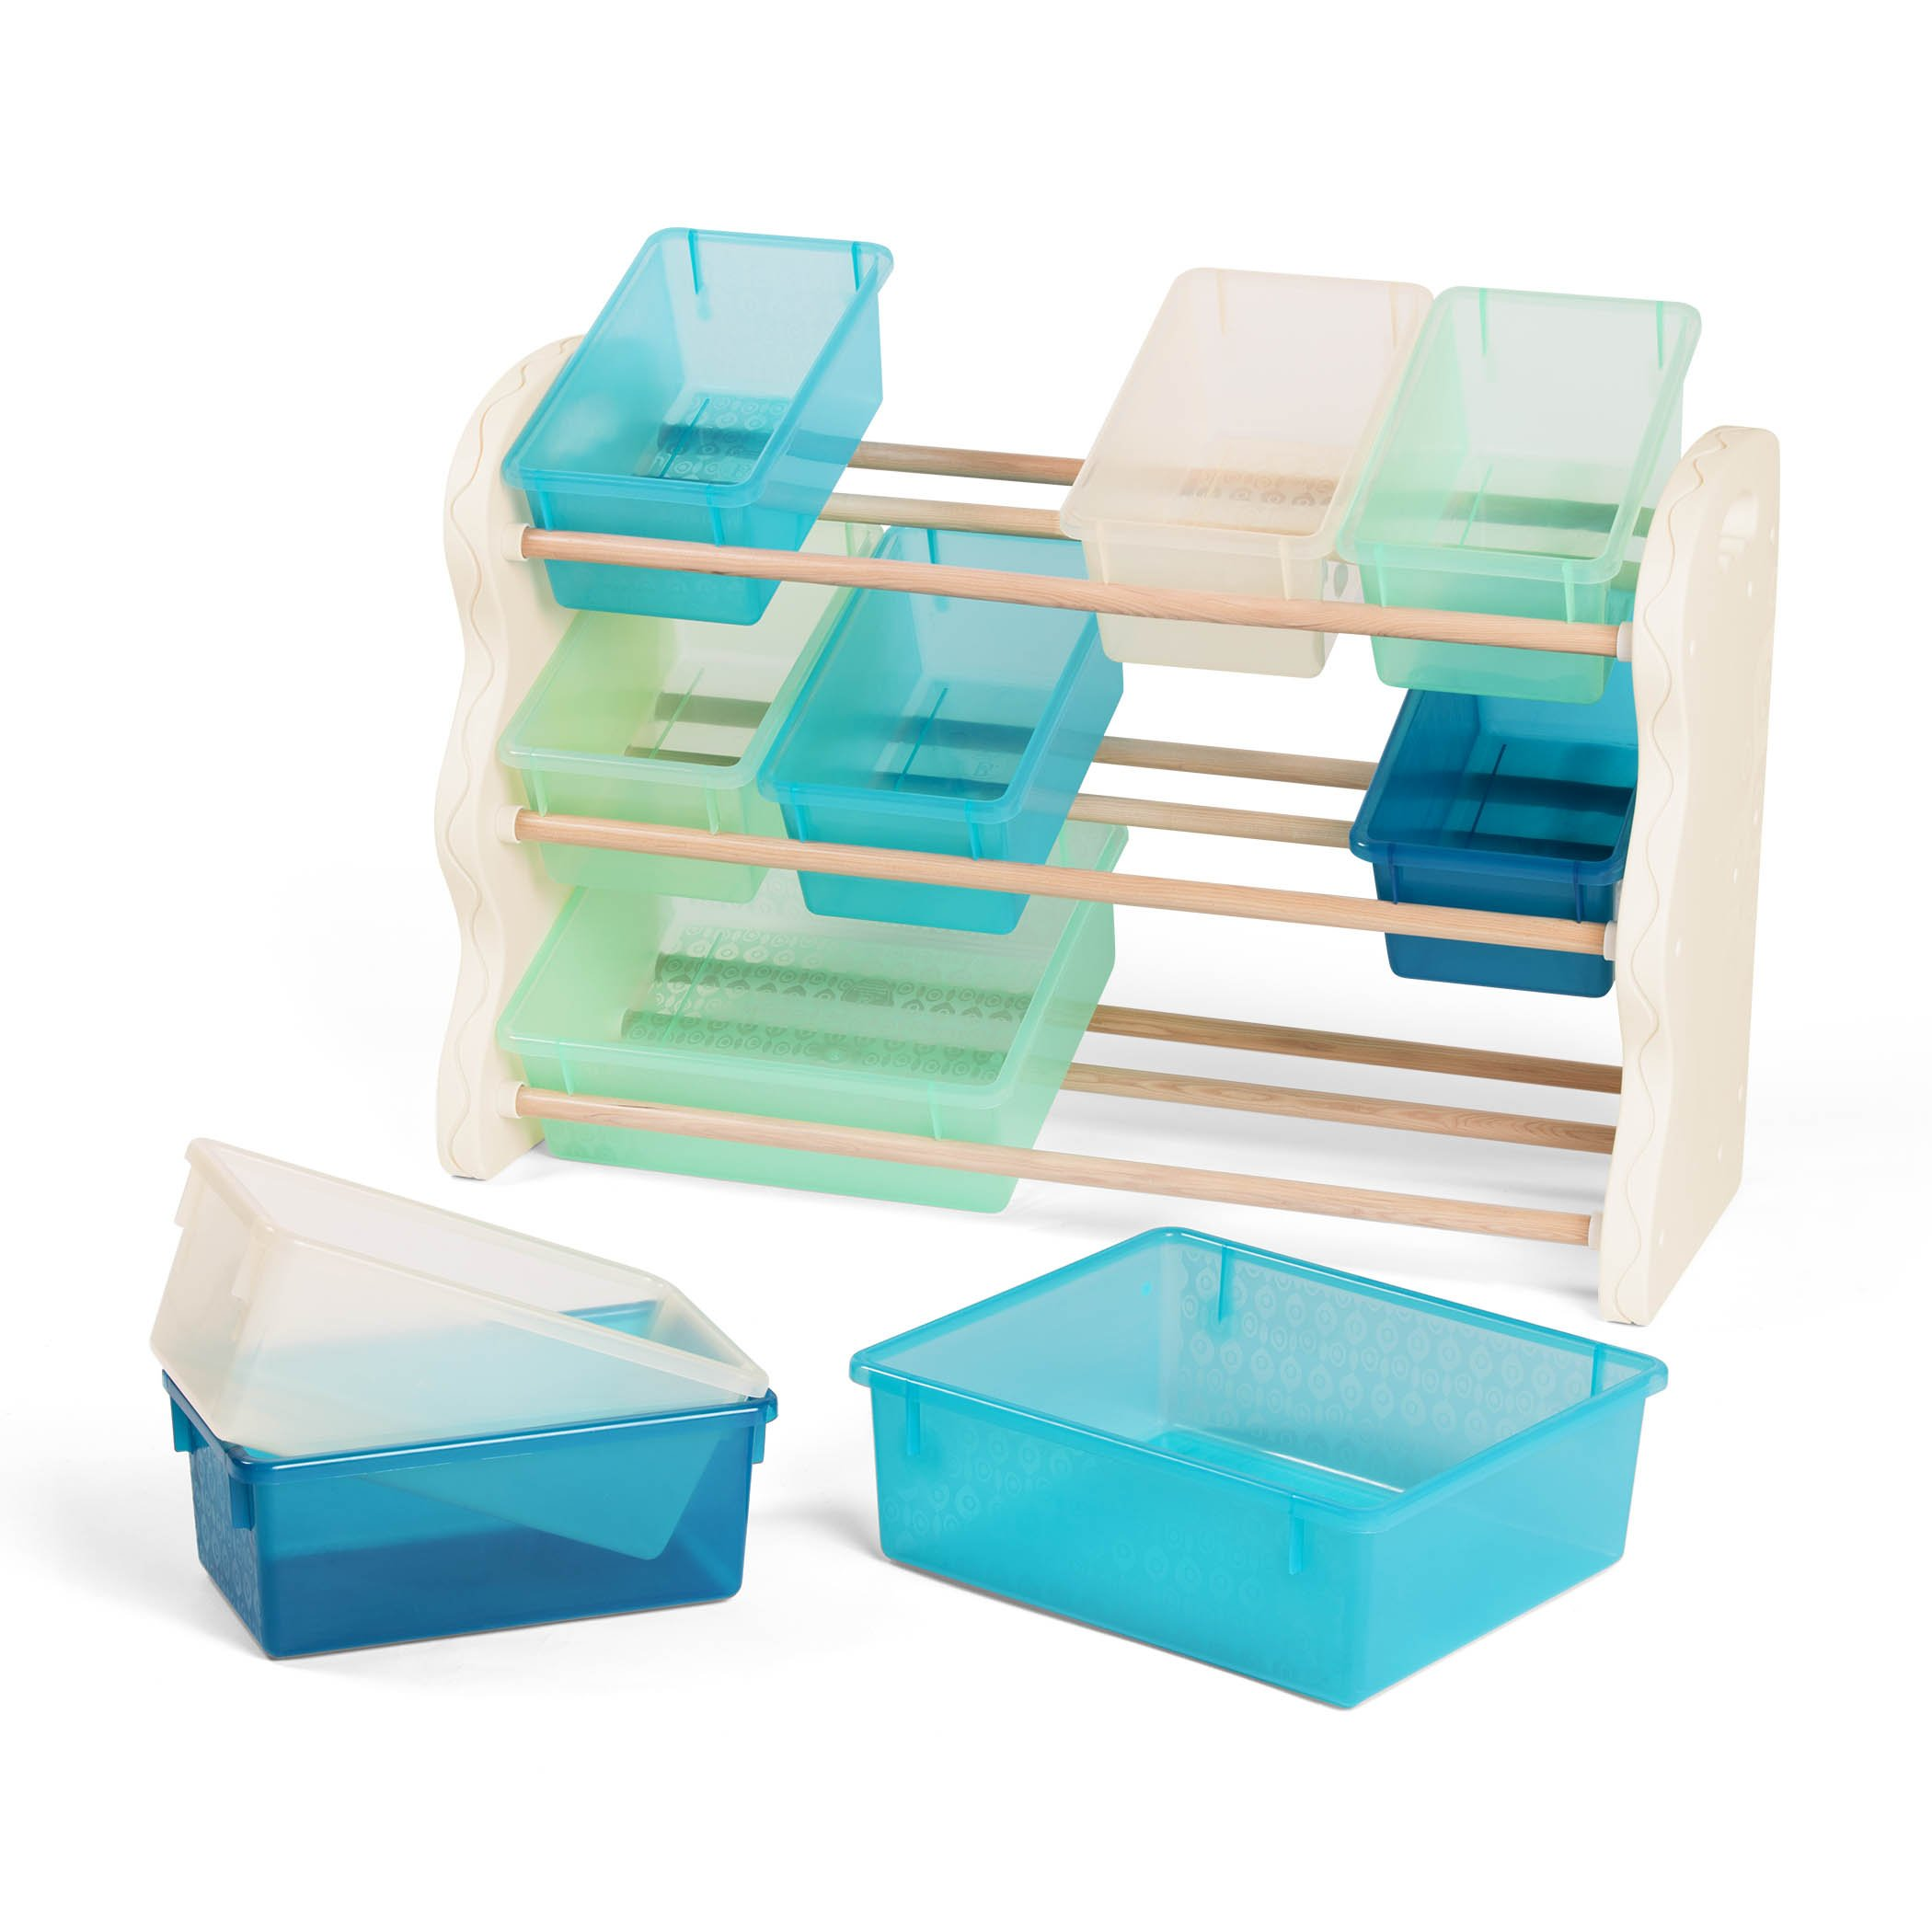 B Spaces By Battat Totes Tidy Toy Organizer Kids Furniture Set